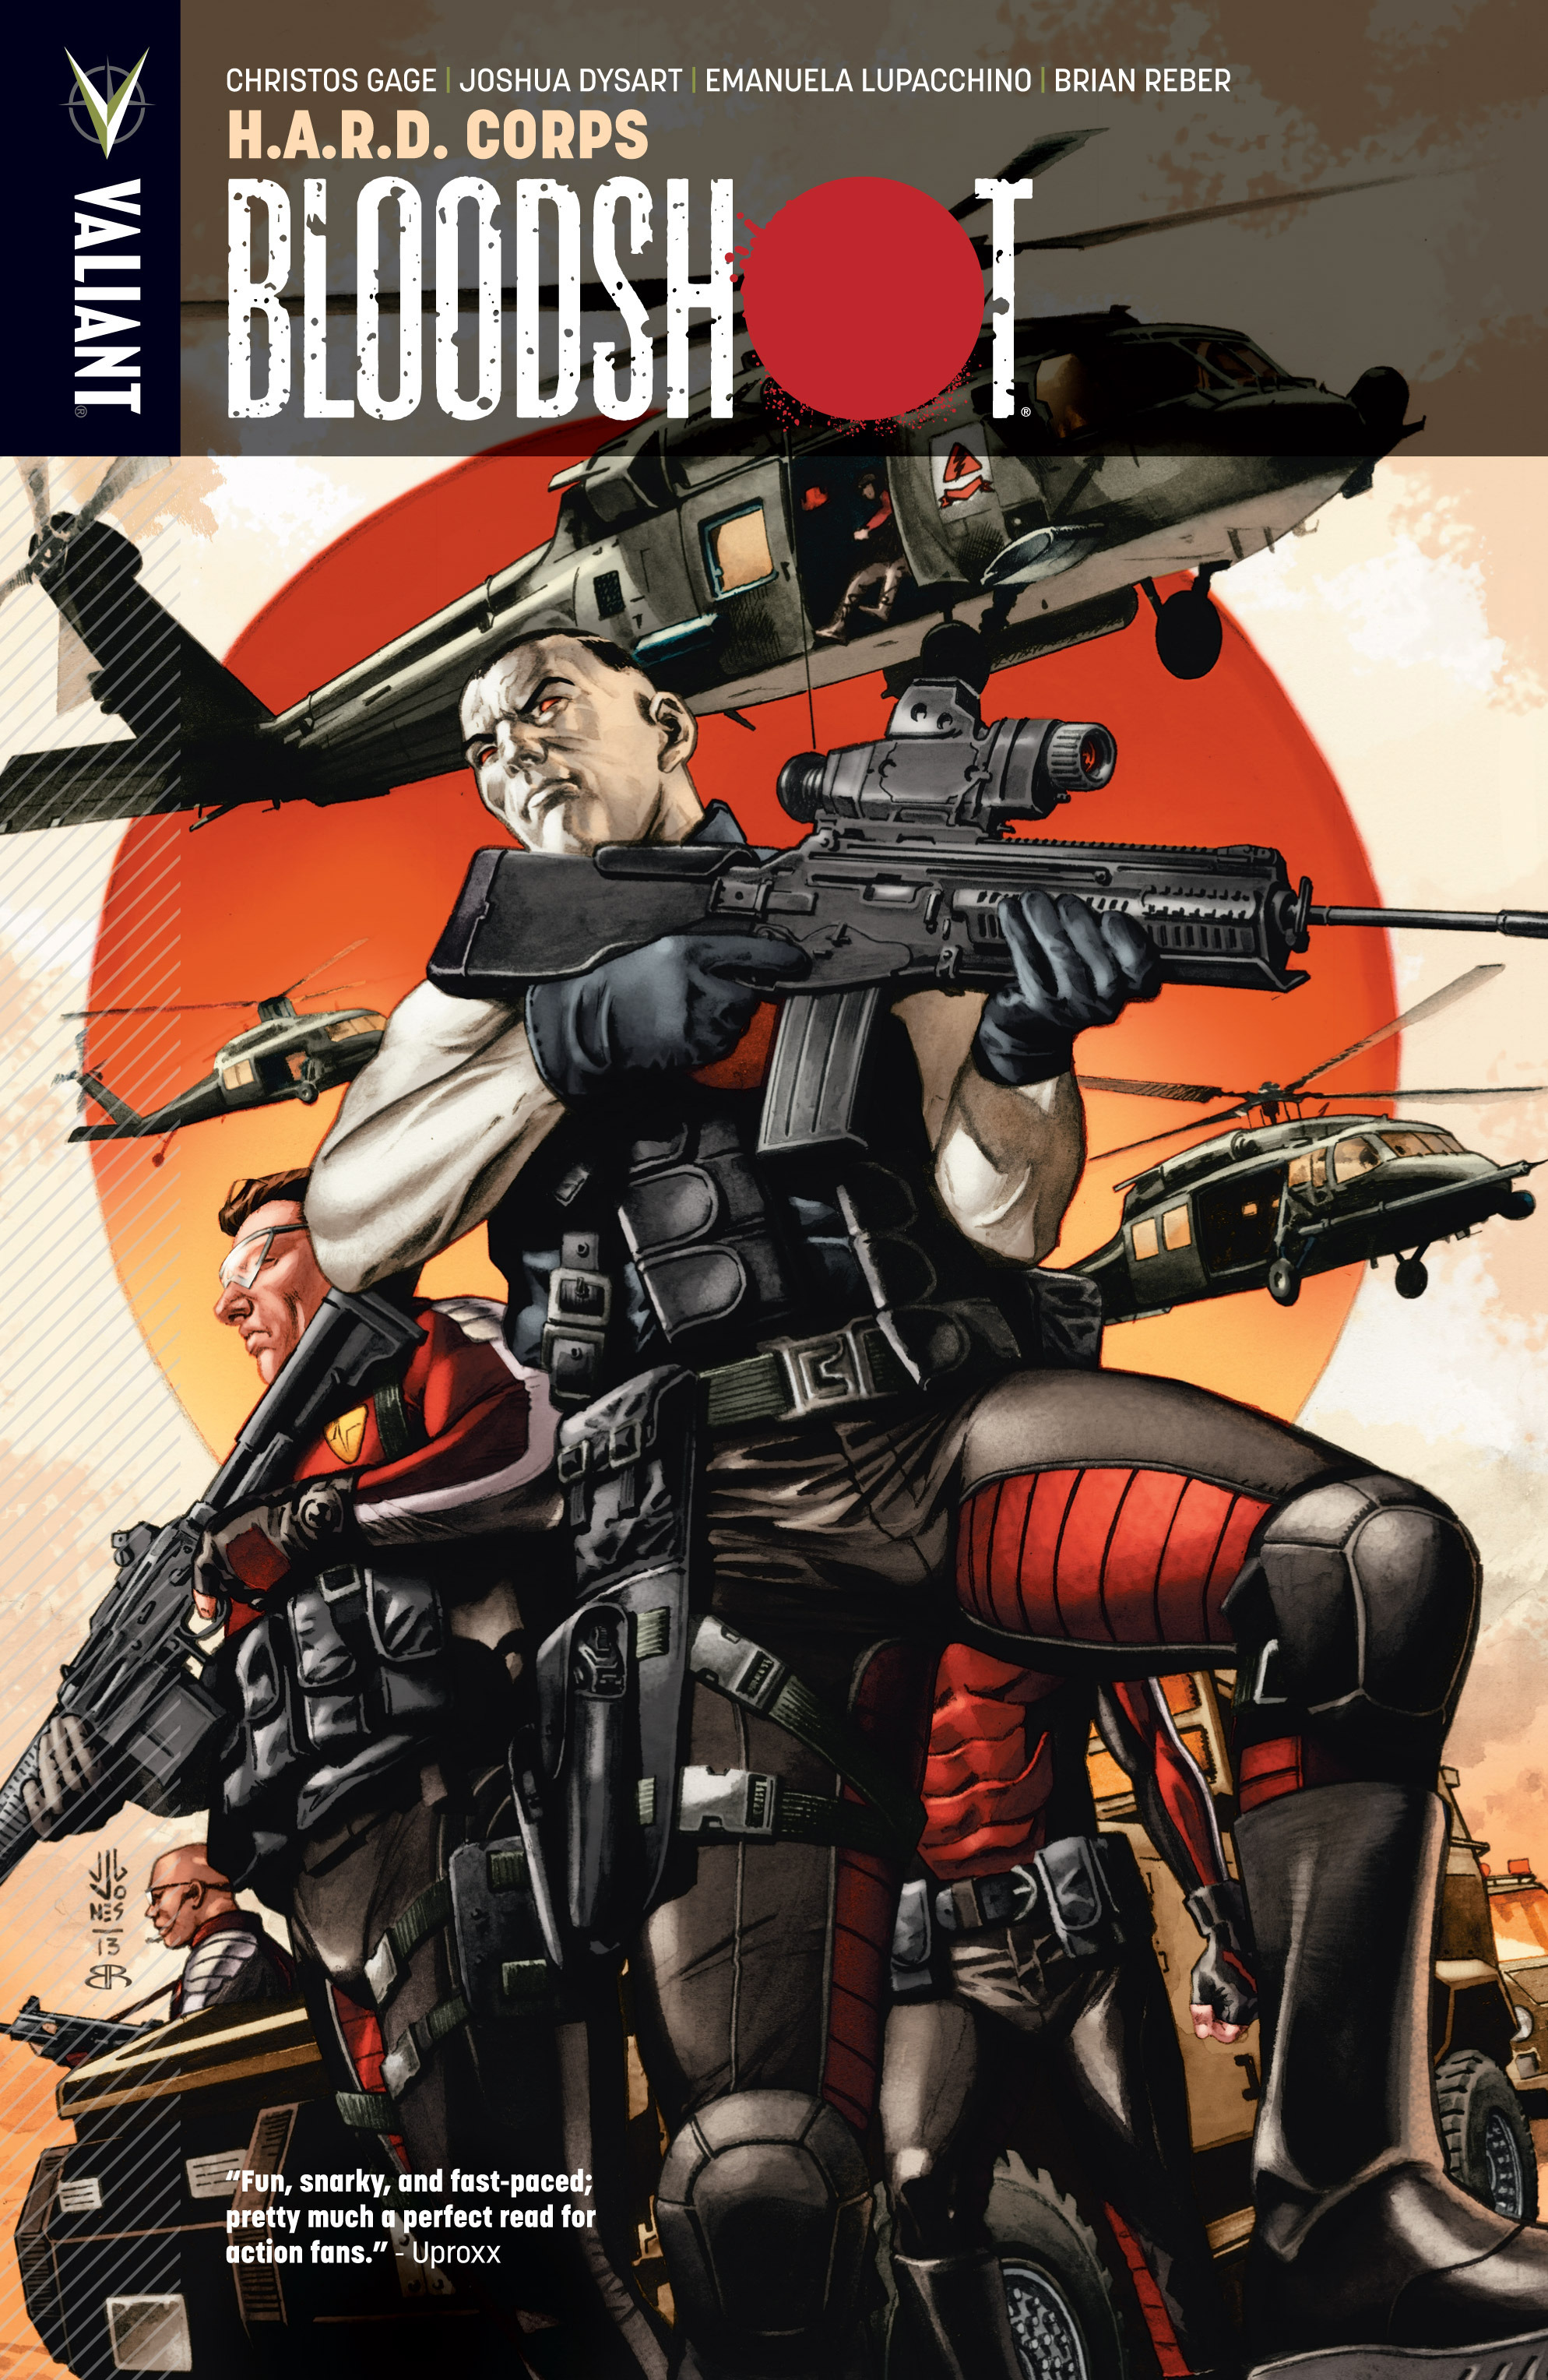 Read online Bloodshot and H.A.R.D.Corps comic -  Issue # TPB 4 - 1